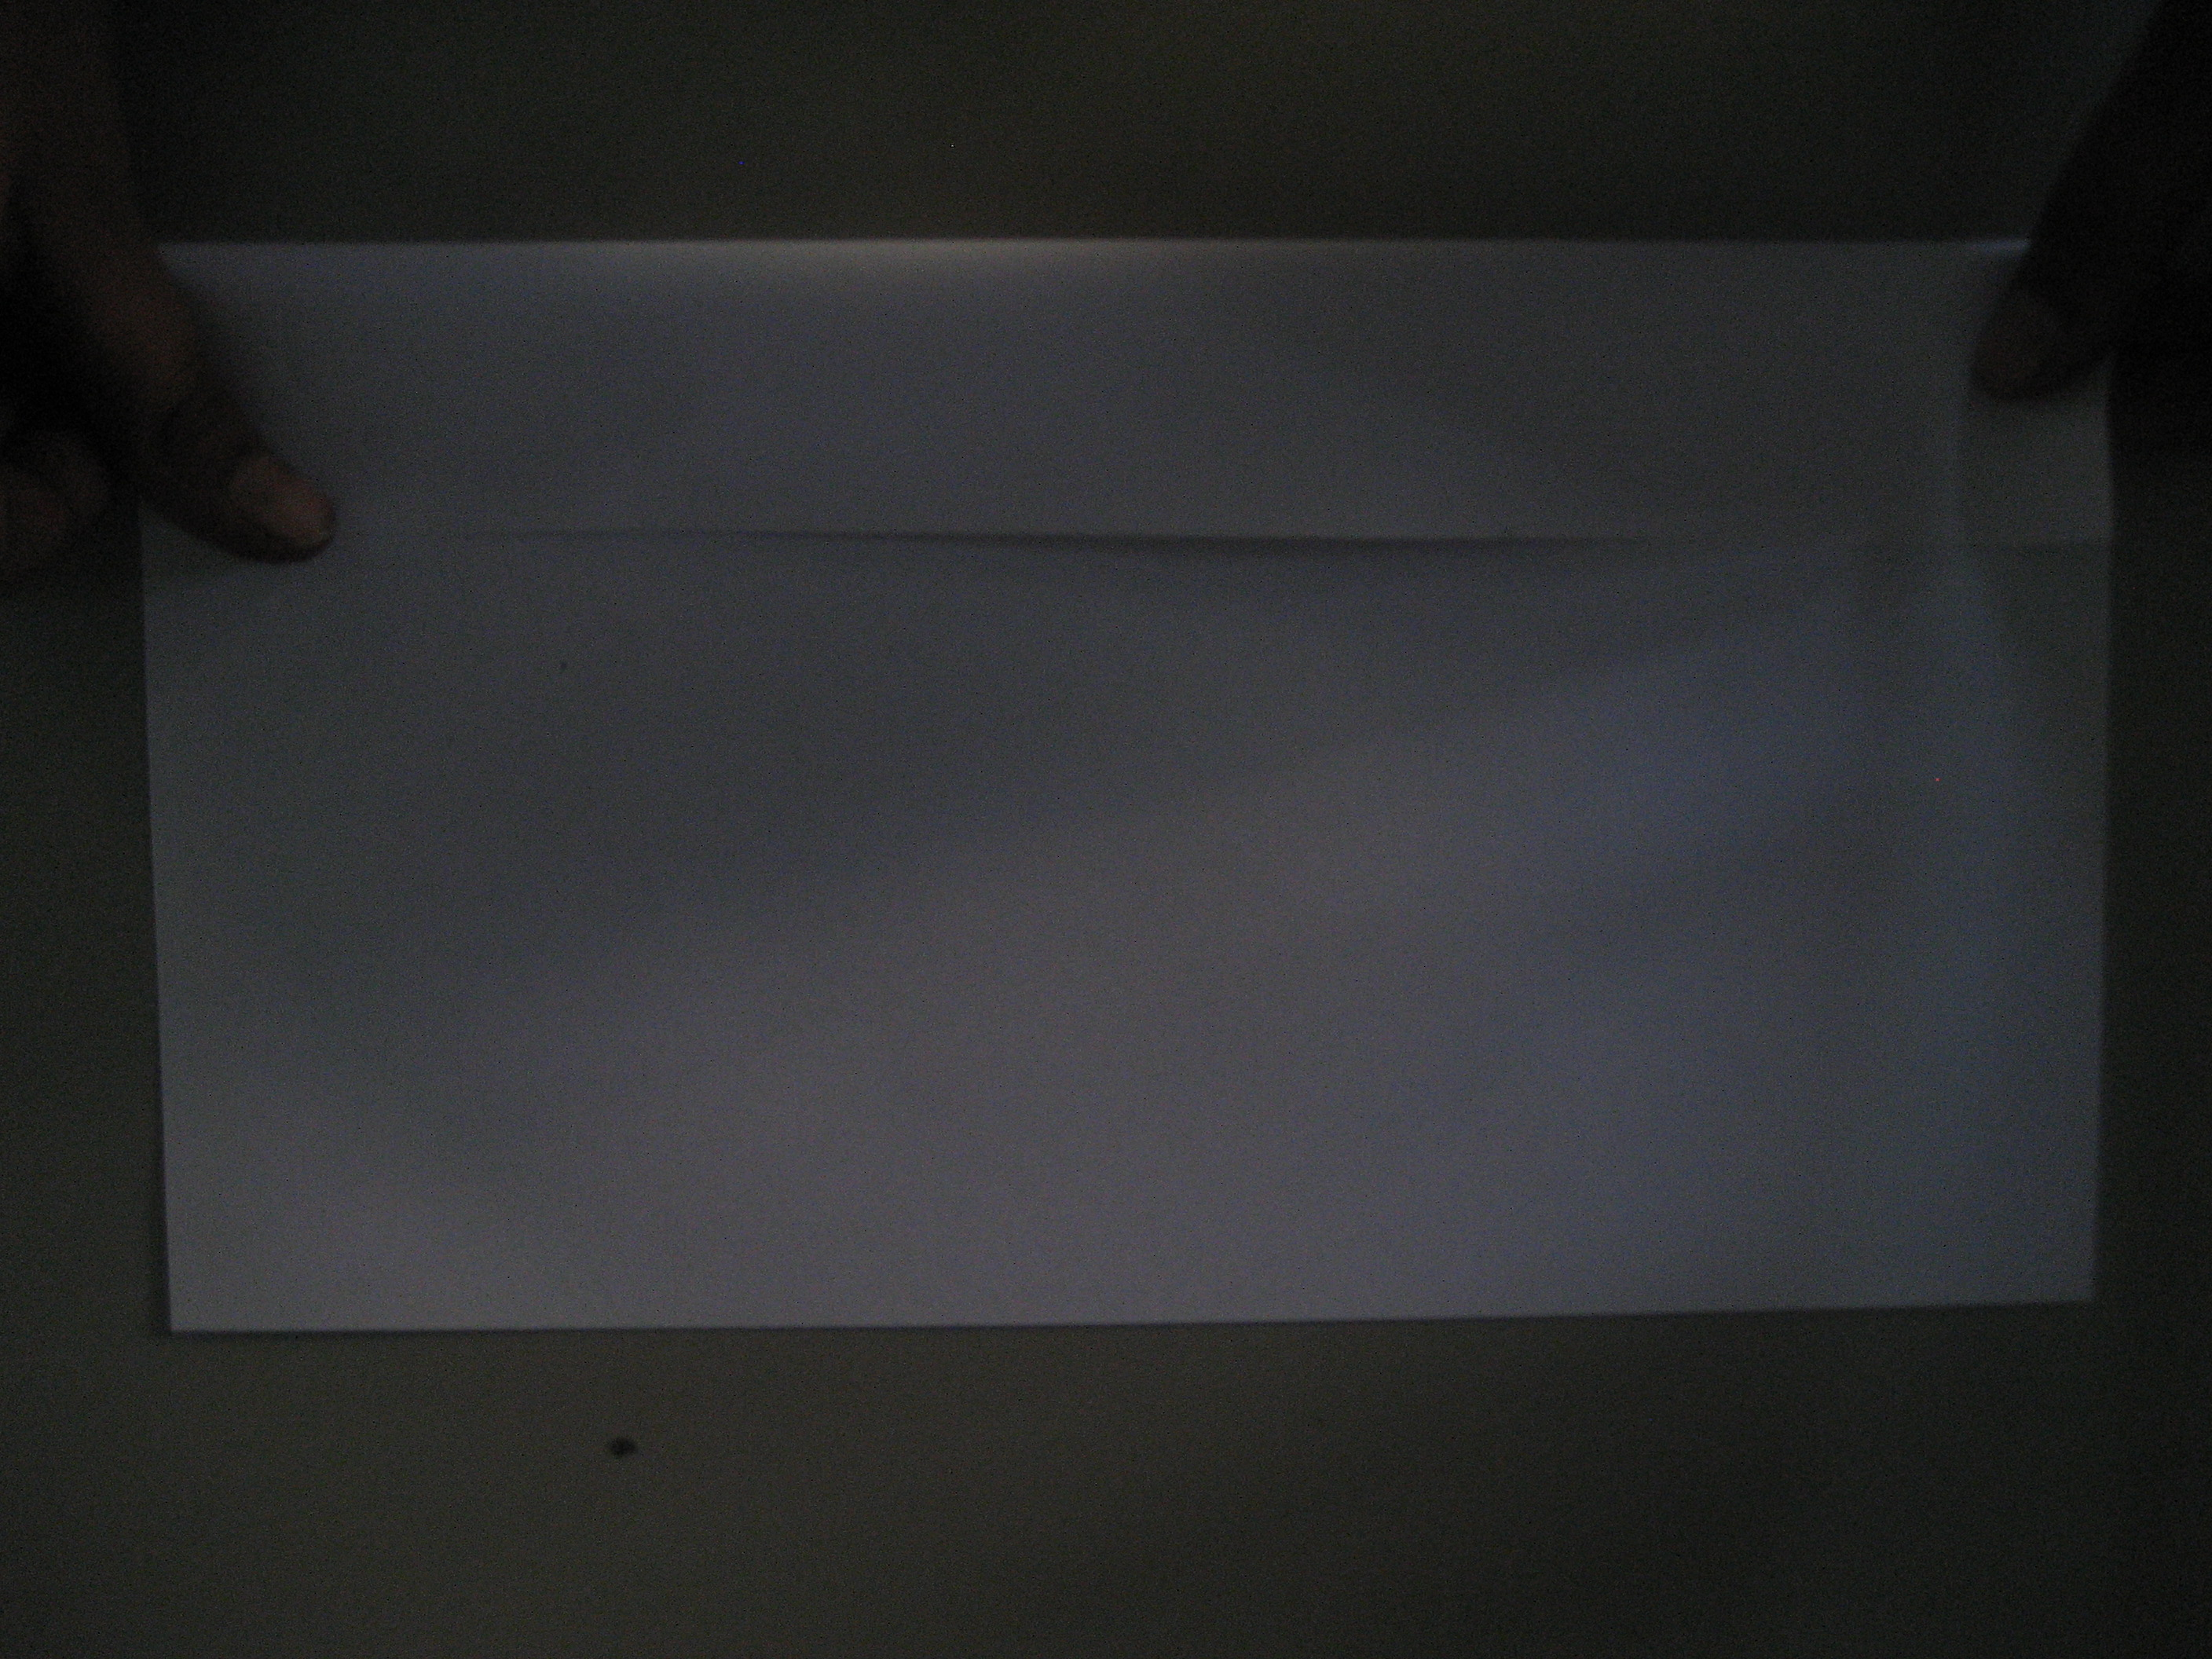 Picture of Hold the Paper Horizontally and Start Folding It Till the End